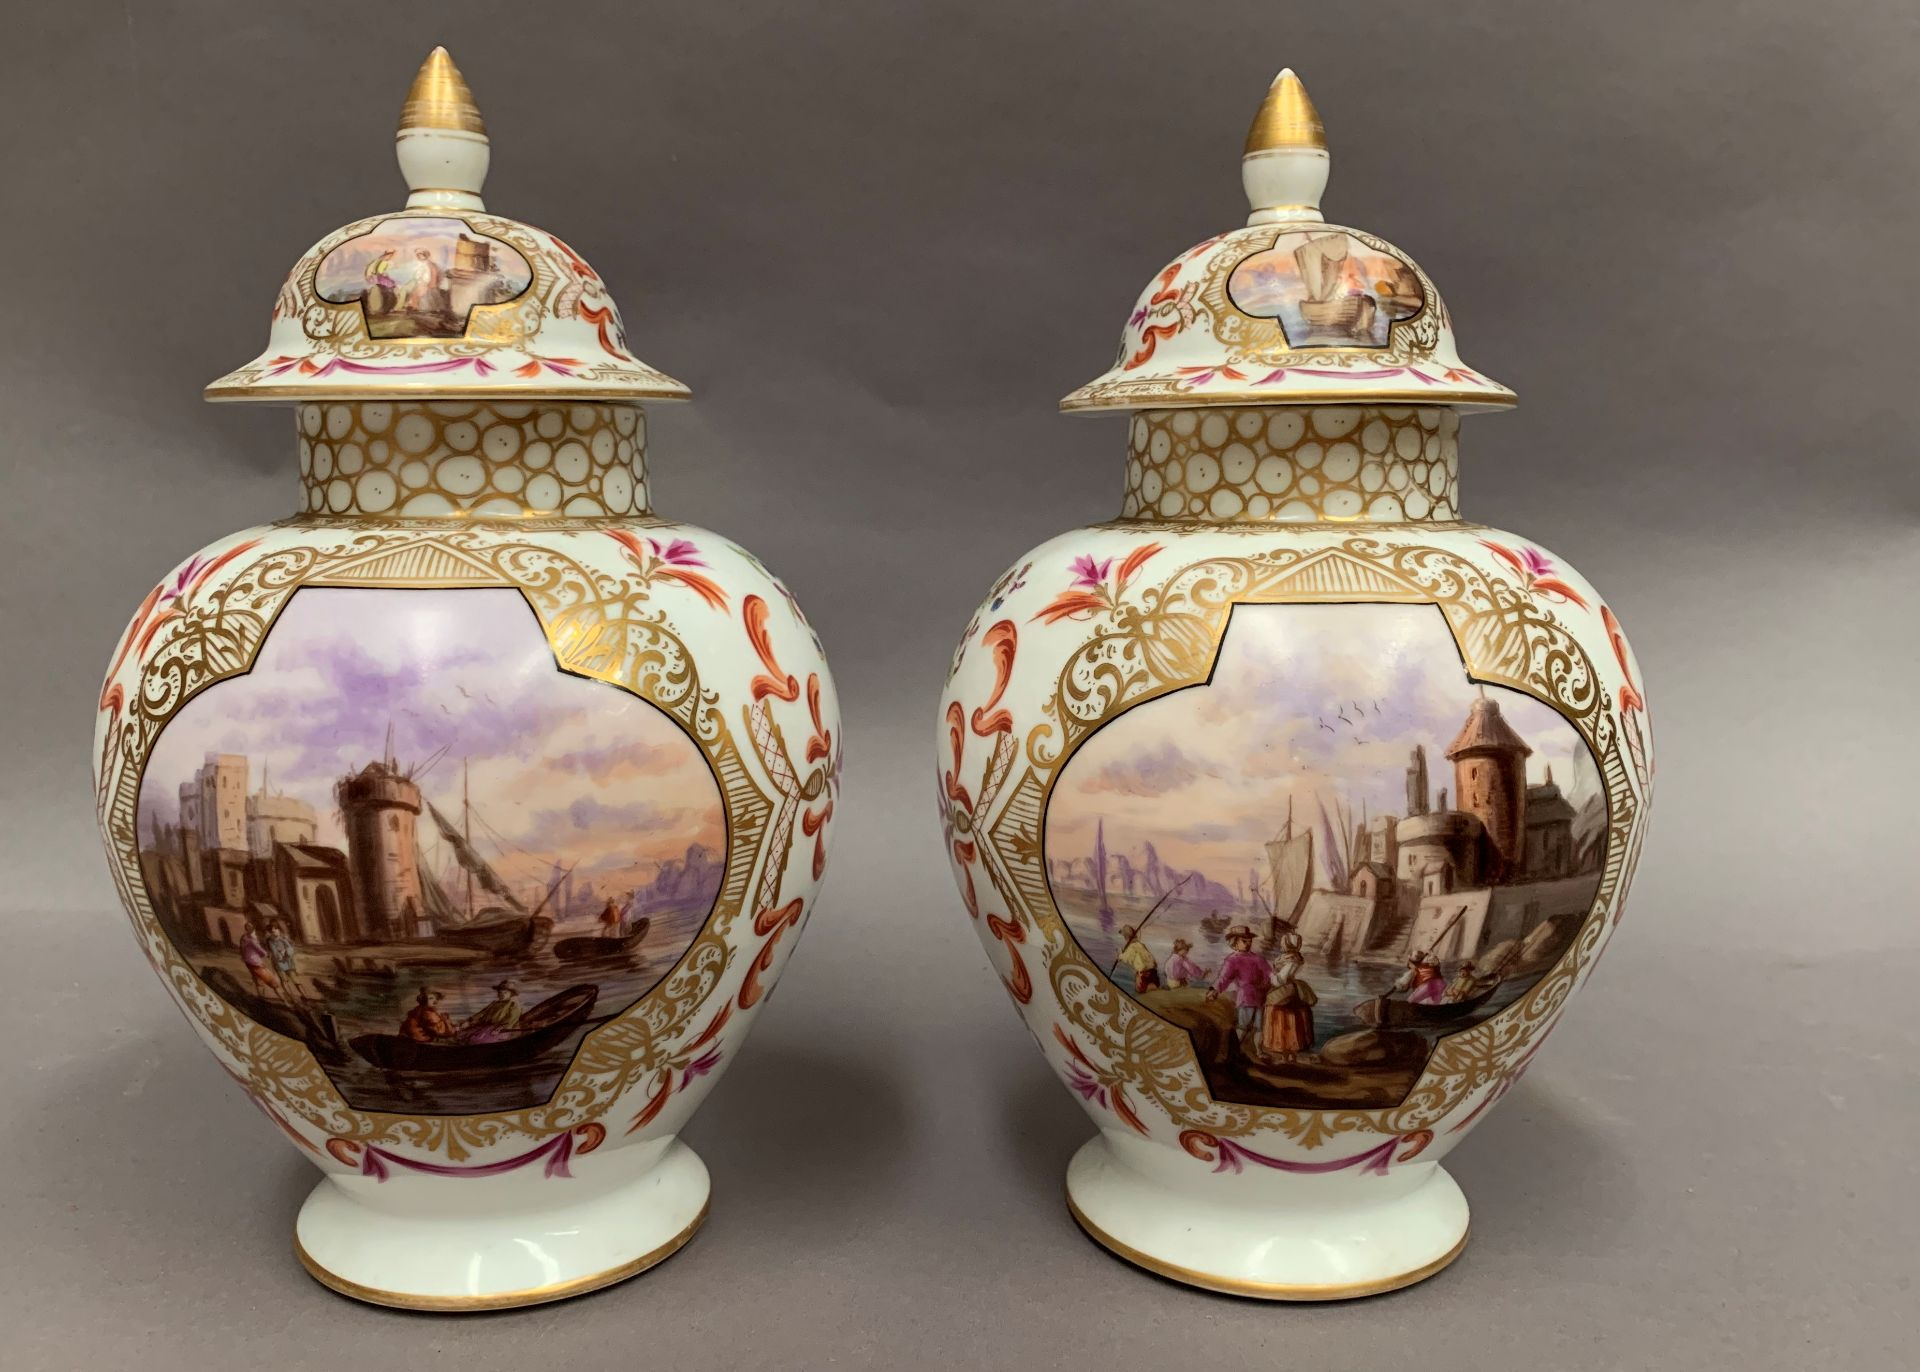 Lot 37 - A pair of vases and covers each with two panels to the vase and two to the cover depicting coastal